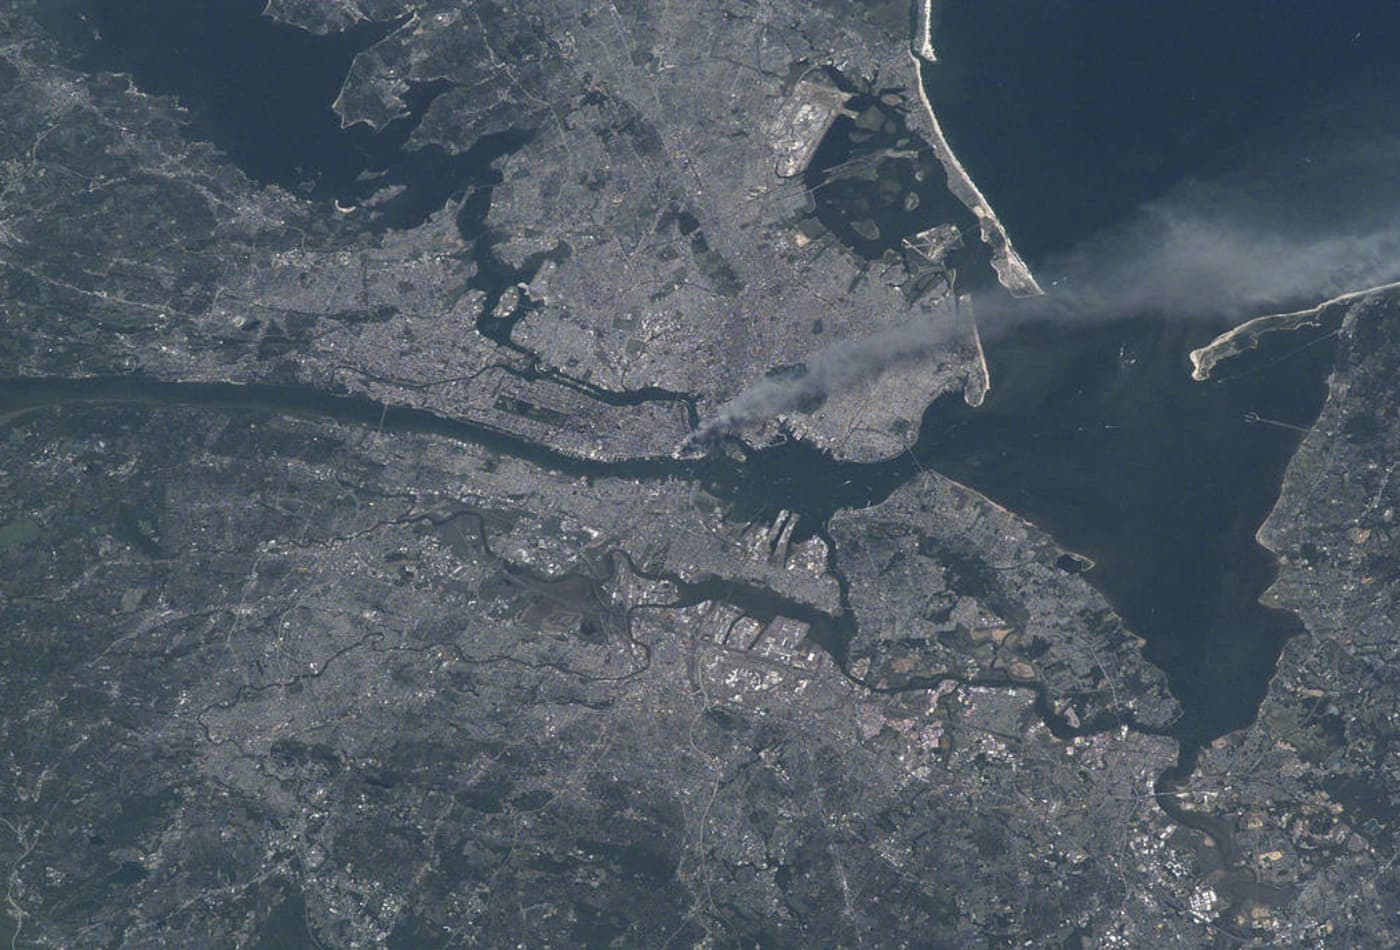 NASA took these images of 9/11 from space 17 years ago